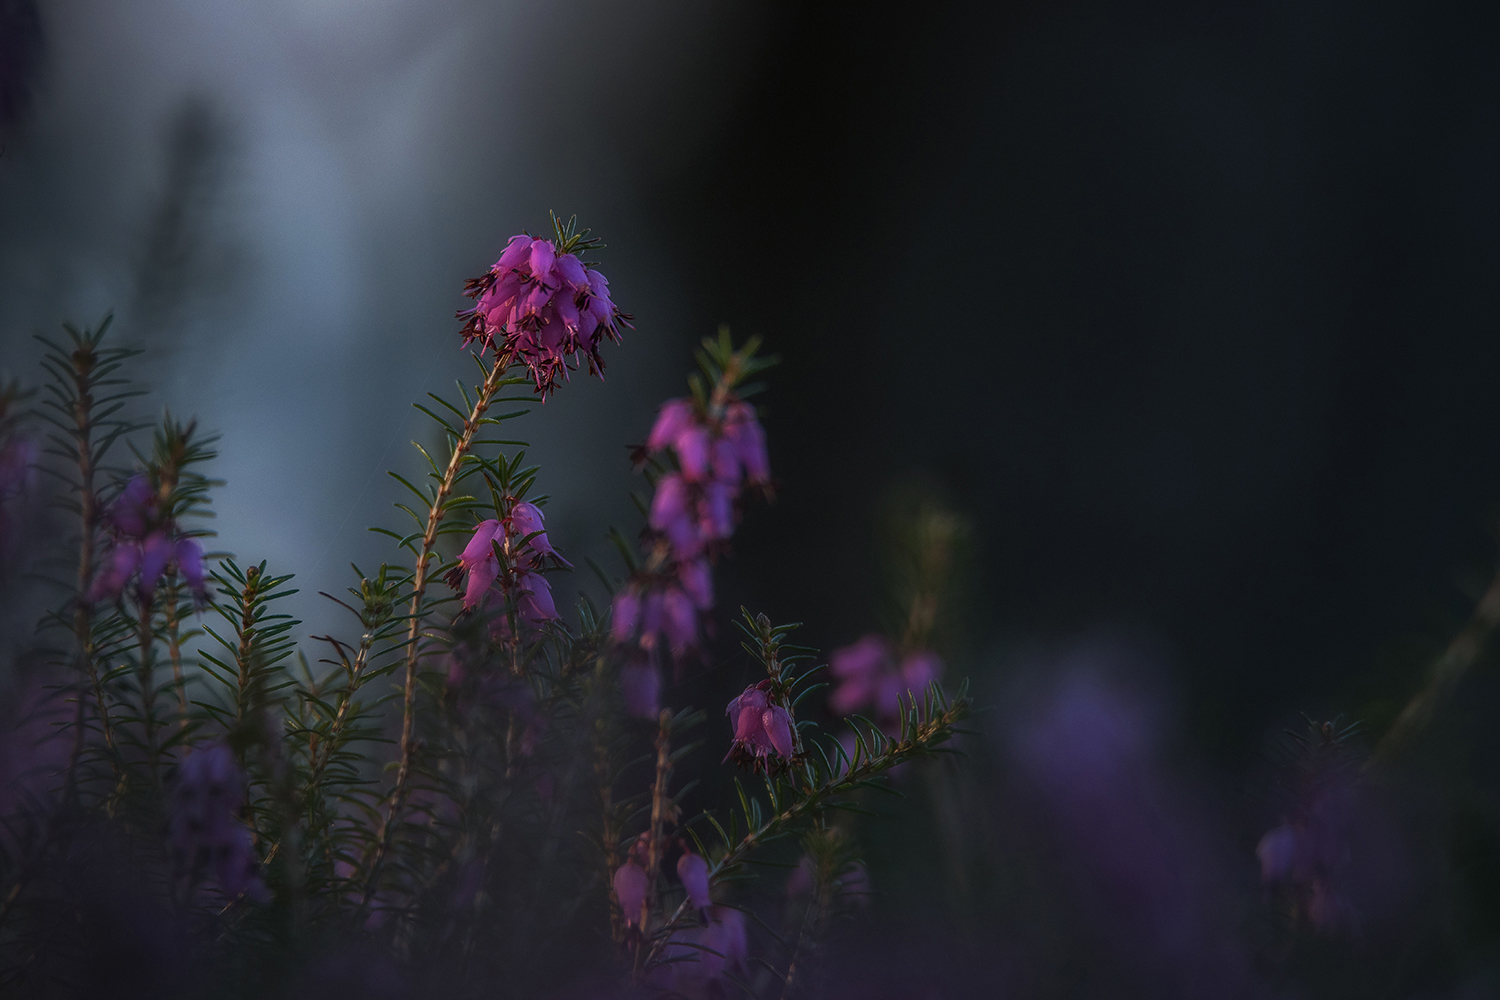 Erica plant in a dark mood example image 1